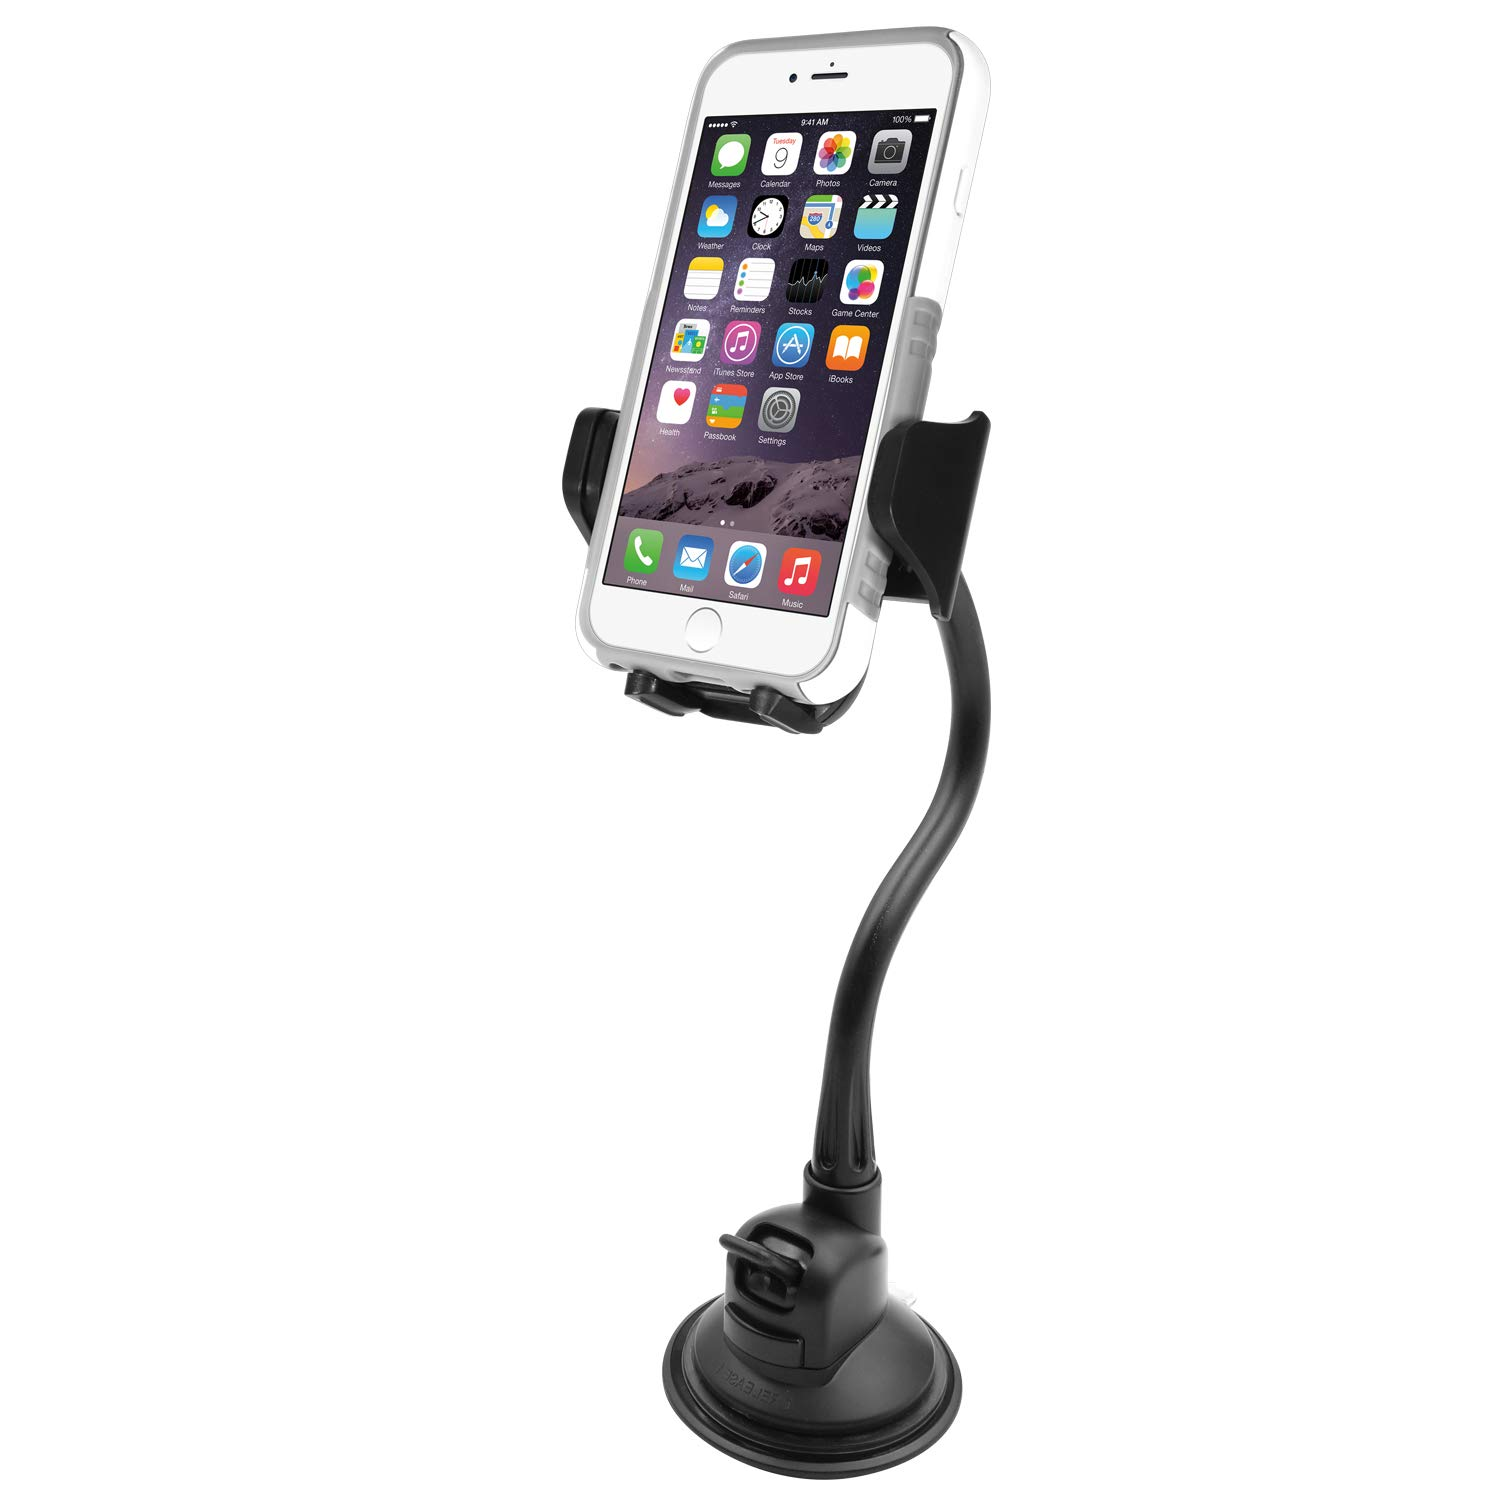 Macally Windshield Phone Mount, Adjustable Suction Cup Window Phone Mount  Holder for iPhone XS XS Max XR X 8 8 Plus 7 7+ 6s 6 SE Samsung Galaxy S9  S9+